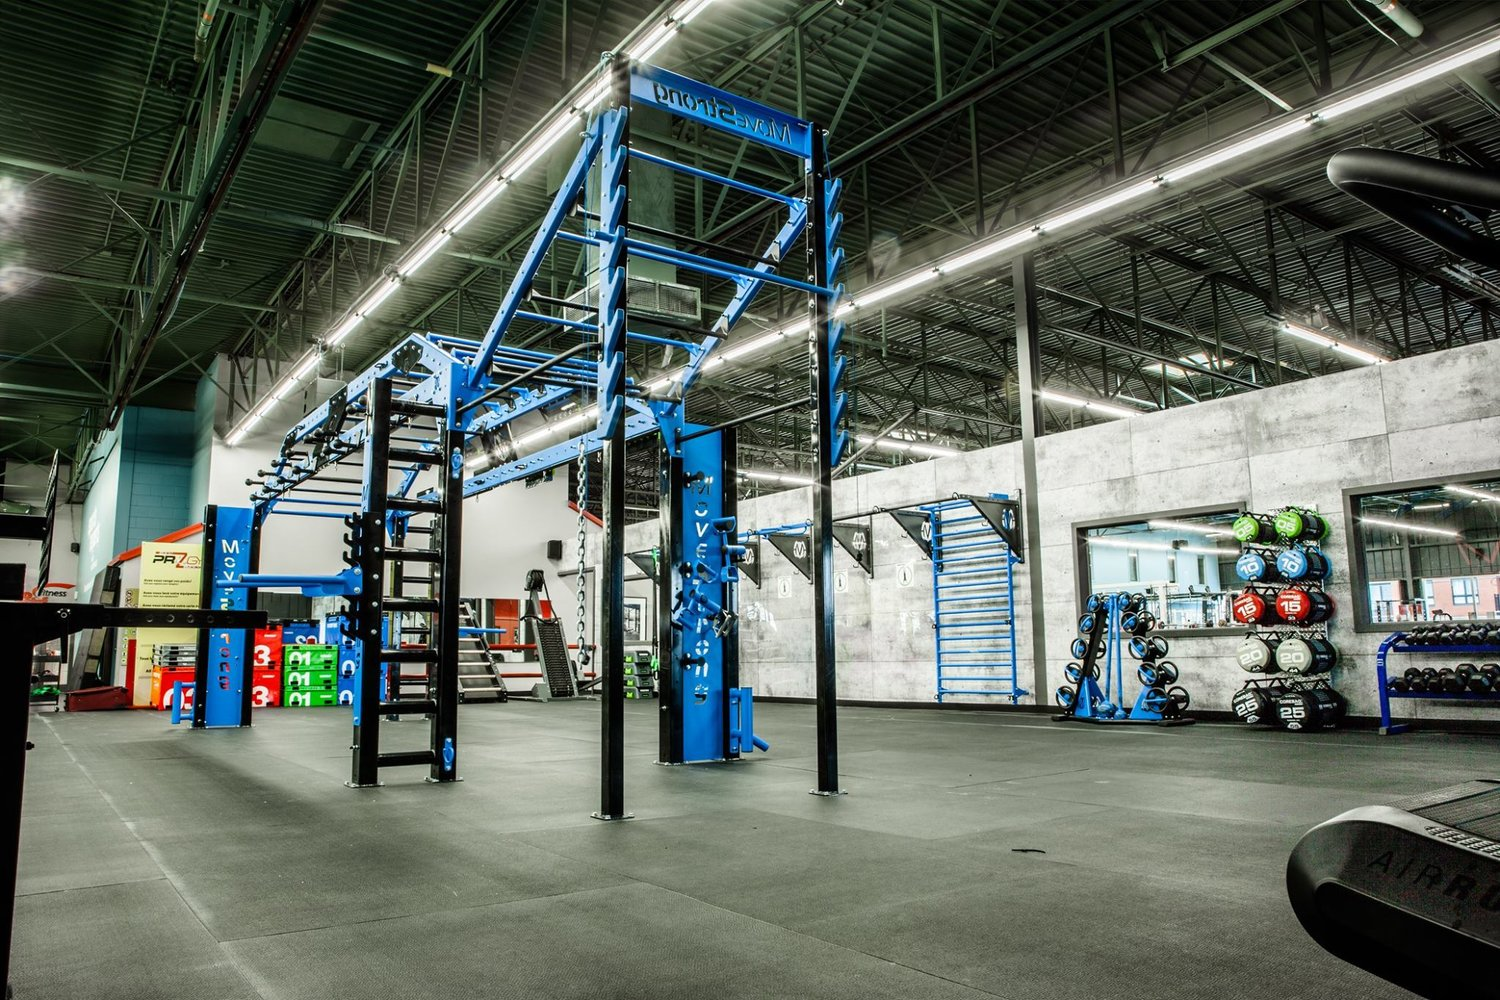 Pro gym montreal adds movestrong functional training movestrong